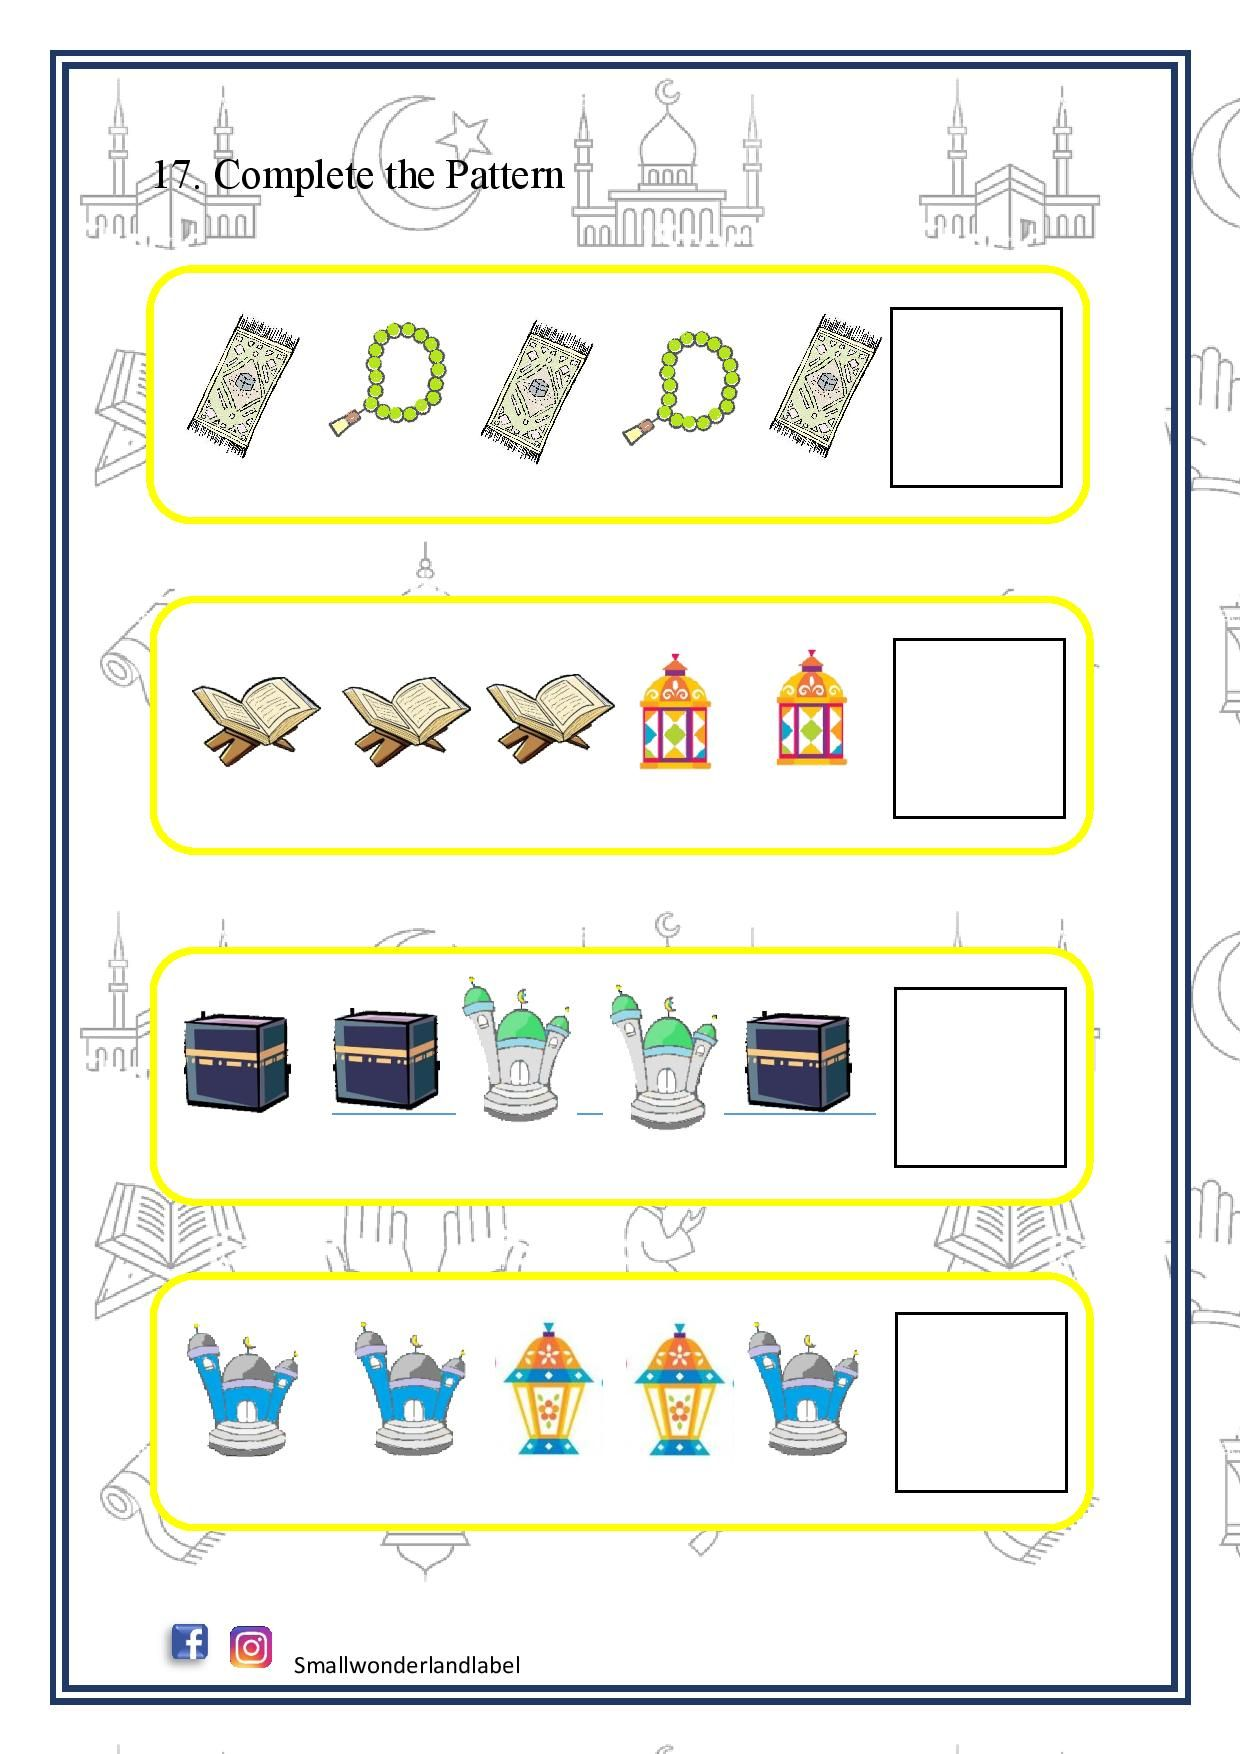 Complete The Pattern Ramadan Activity Pack In 2021 Ramadan Activities Ramadan Kids Islamic Kids Activities [ 1754 x 1240 Pixel ]